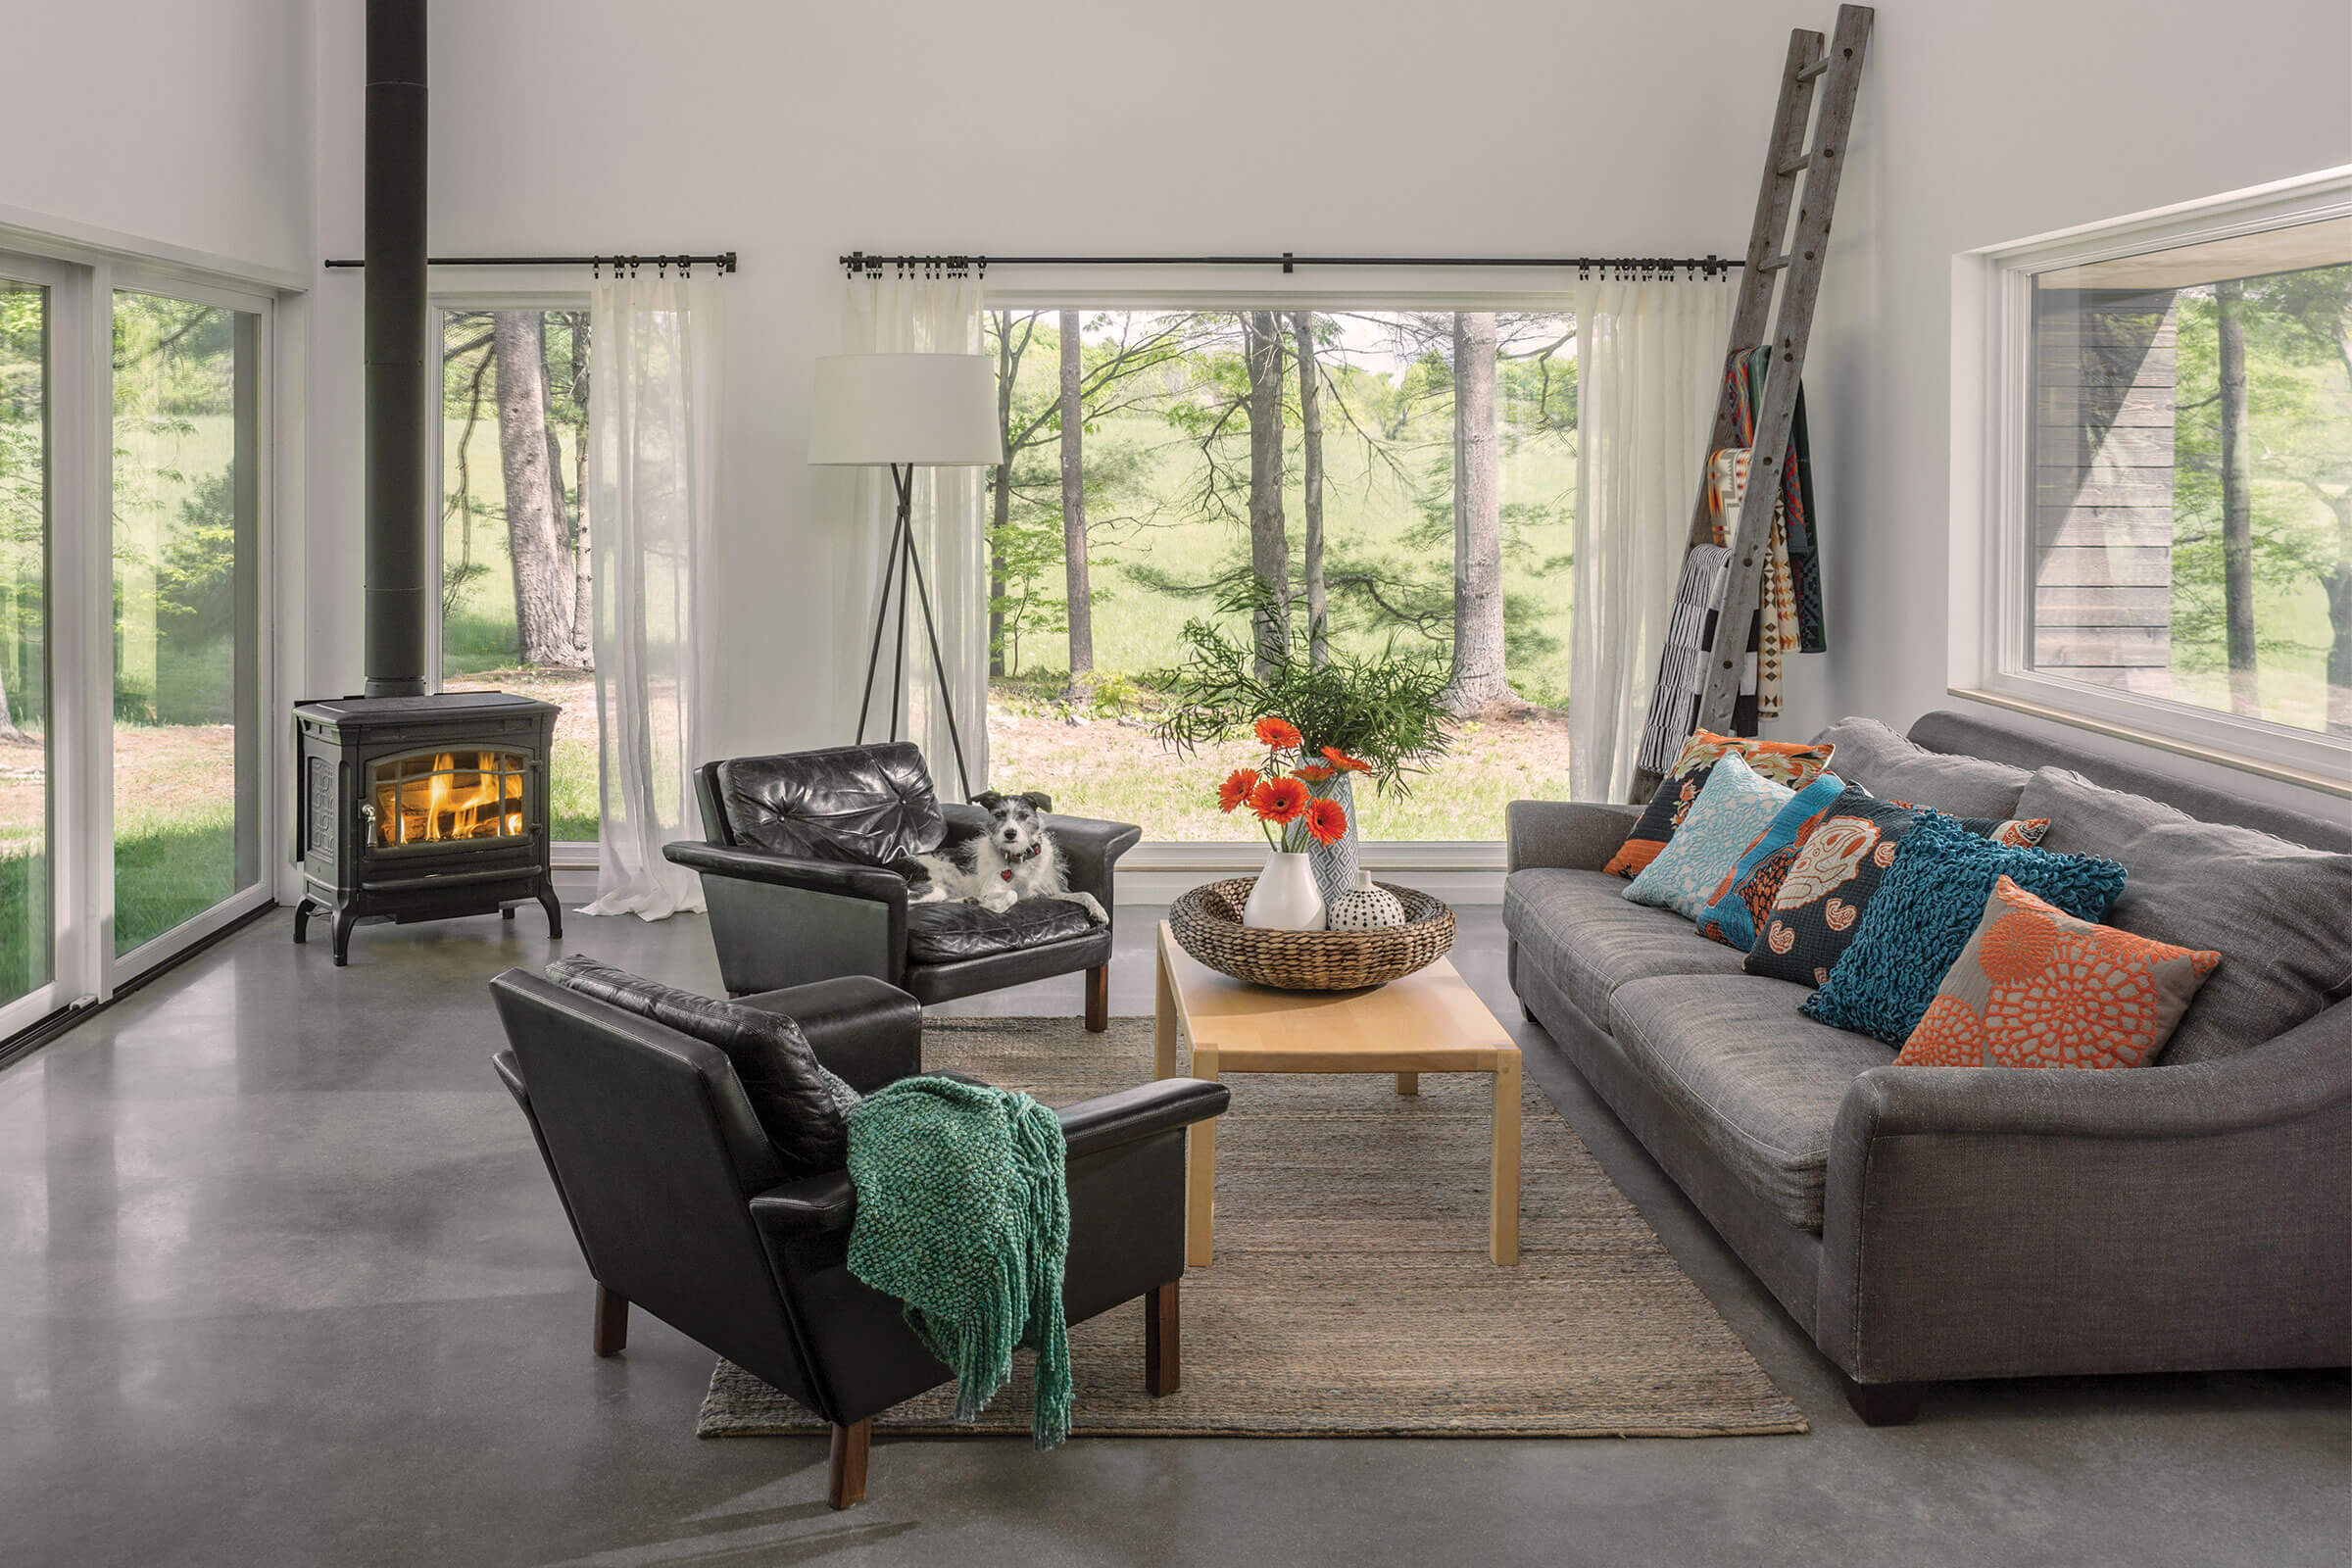 Living Room With Ultimate Picture Narrow Frame Window